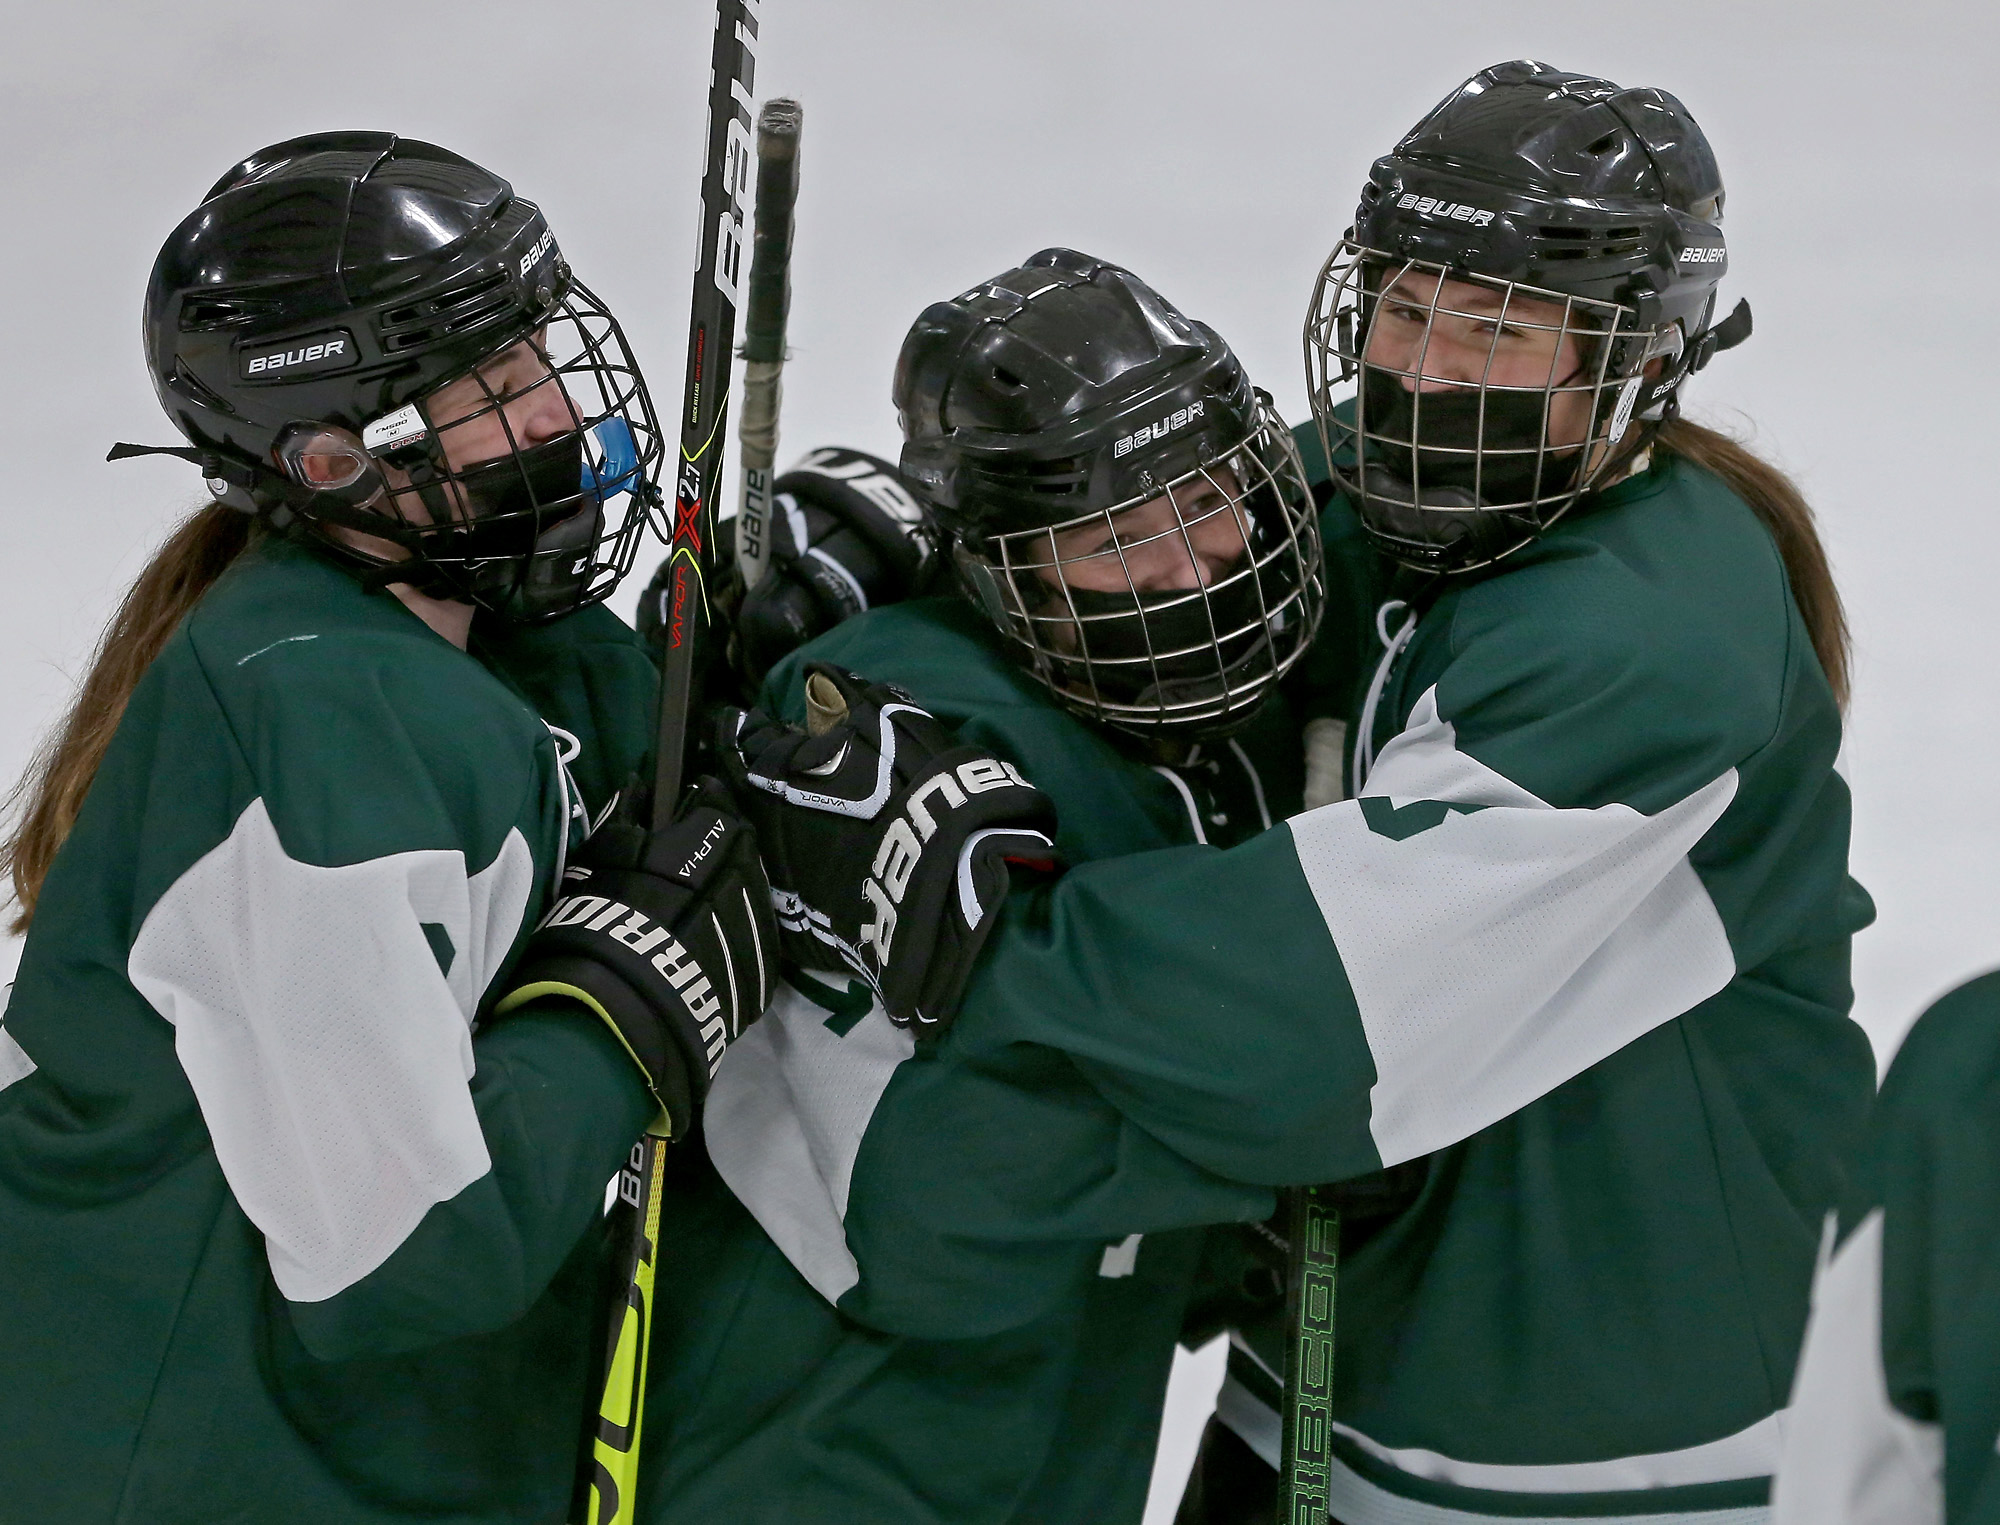 Taking a look at how the Super 8 girls tourney could have come together